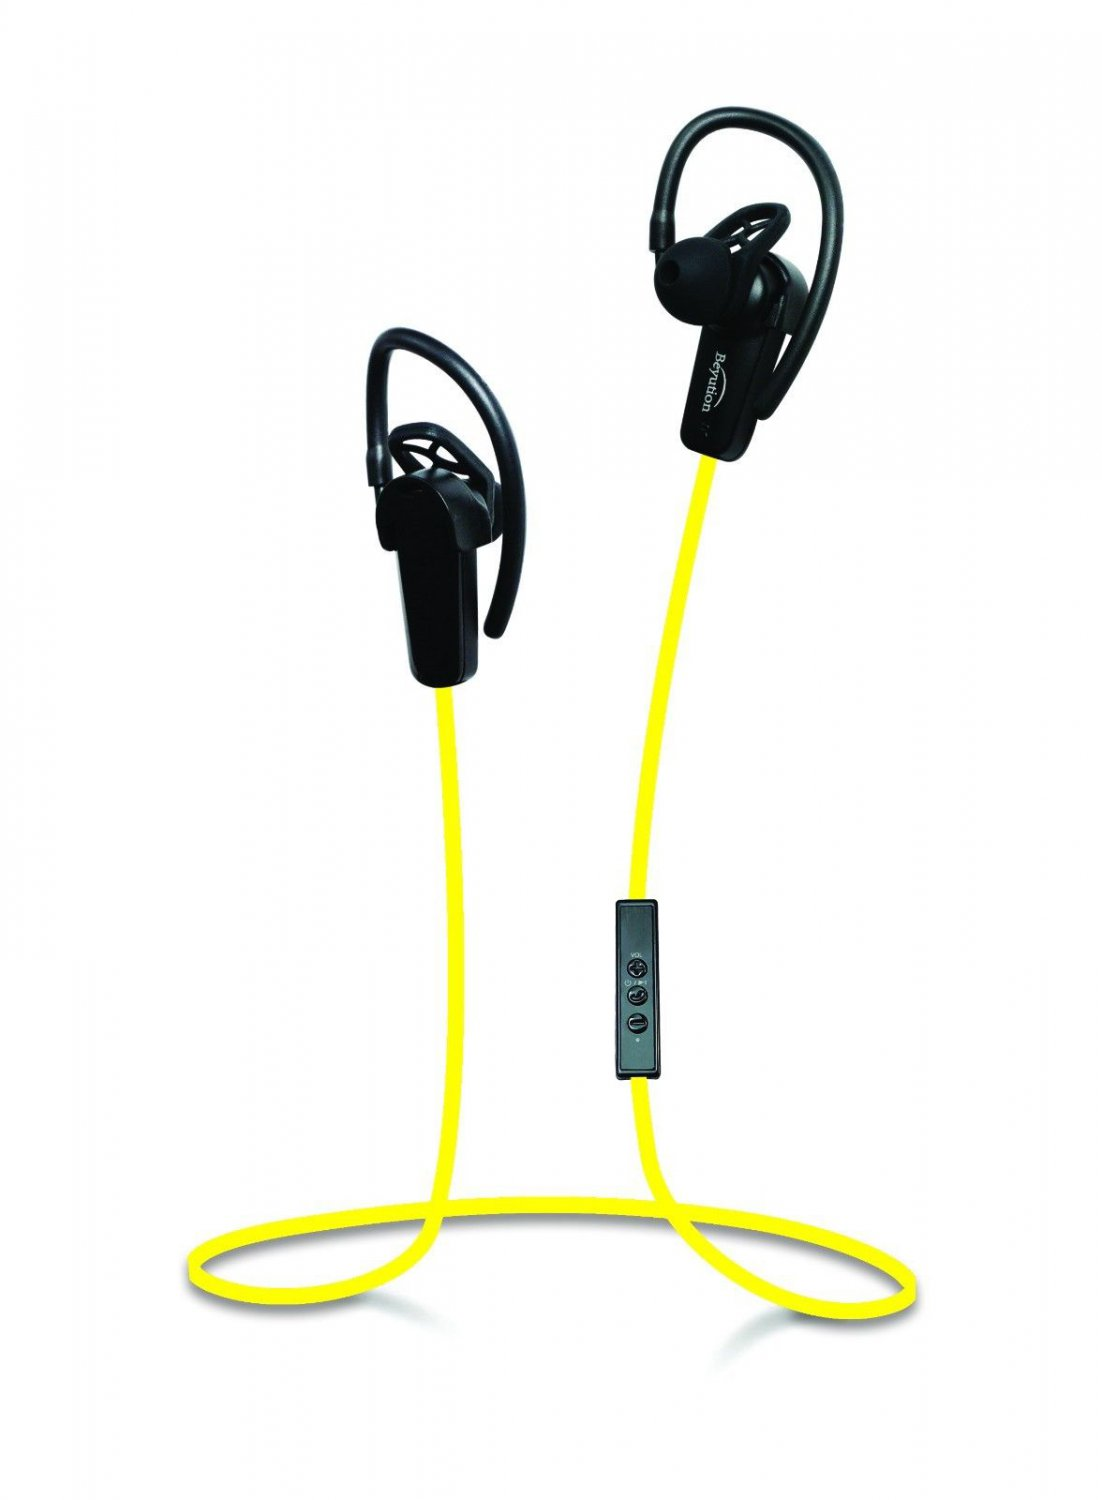 Yellow Hi-Fi StereoBluetooth V4.0 Headphones For iPhone6 5s 5c 5 4s iPad iPod iTouch